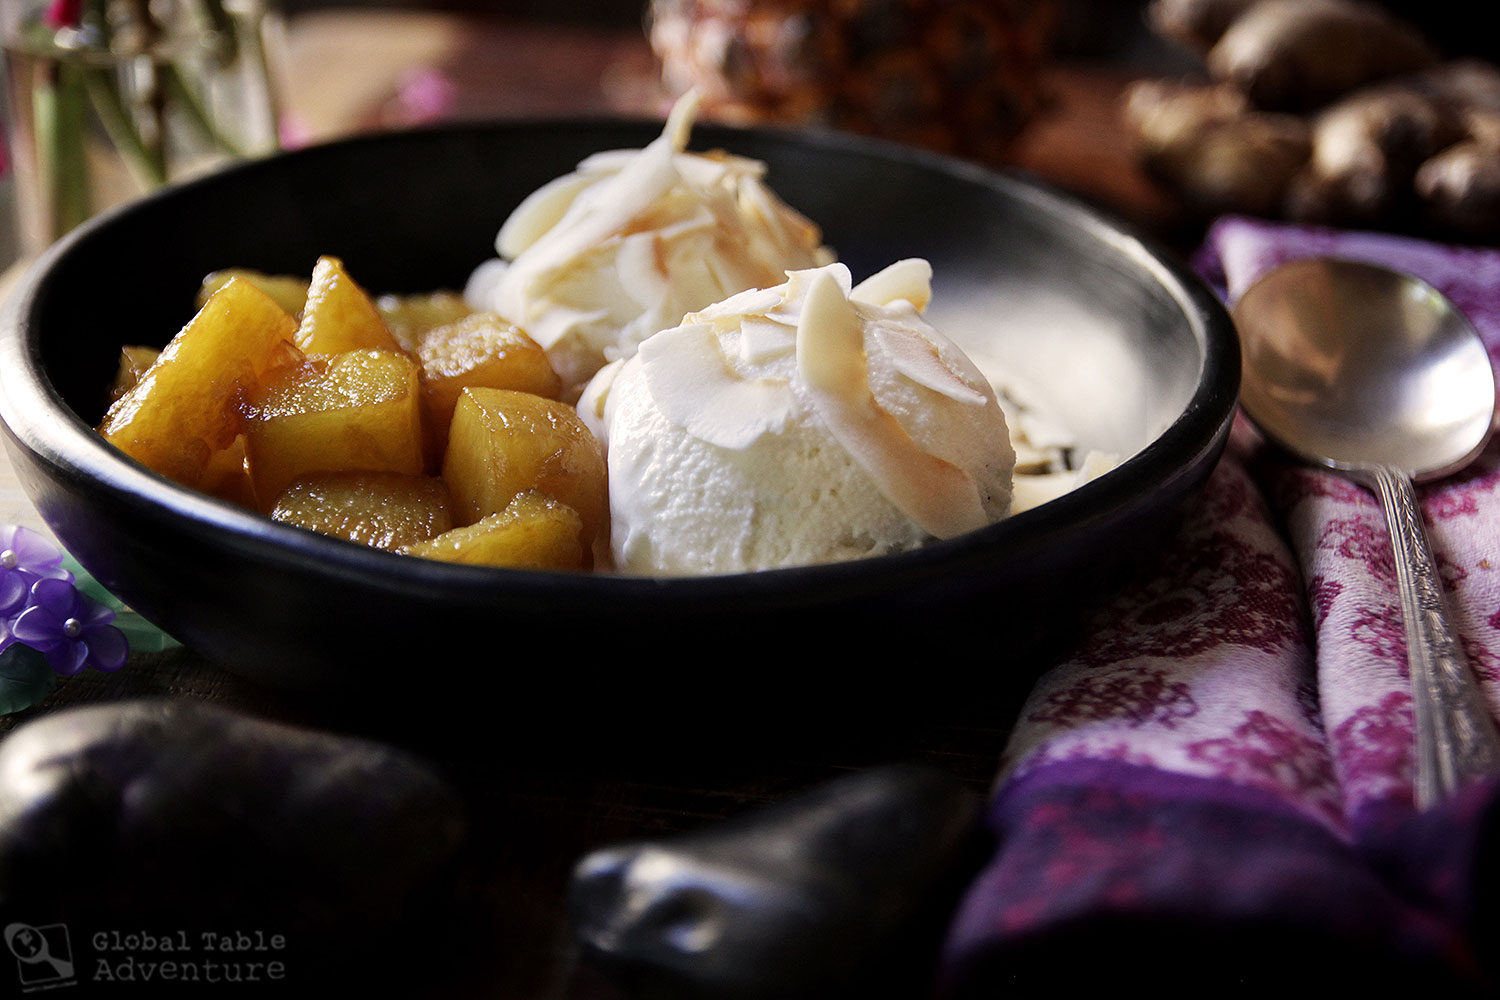 Recipe for Gingered Pineapple Sundae with Toasted Coconut Flakes